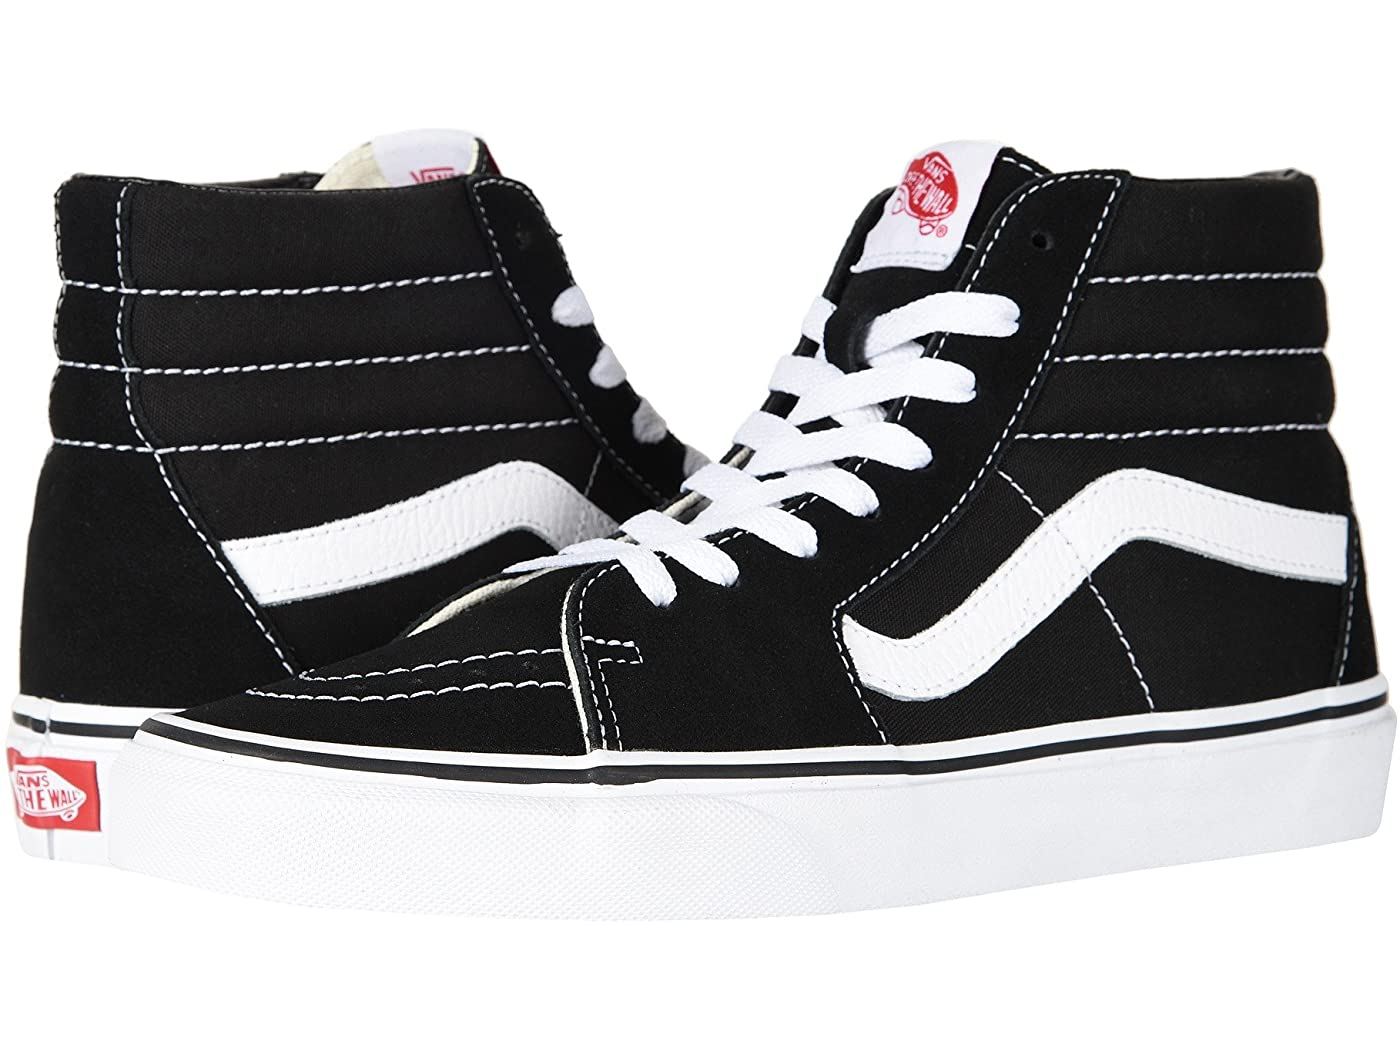 SK8-Hi™ Core Classics by Vans, available on zappos.com for $69.95 Candice Swanepoel Shoes Exact Product